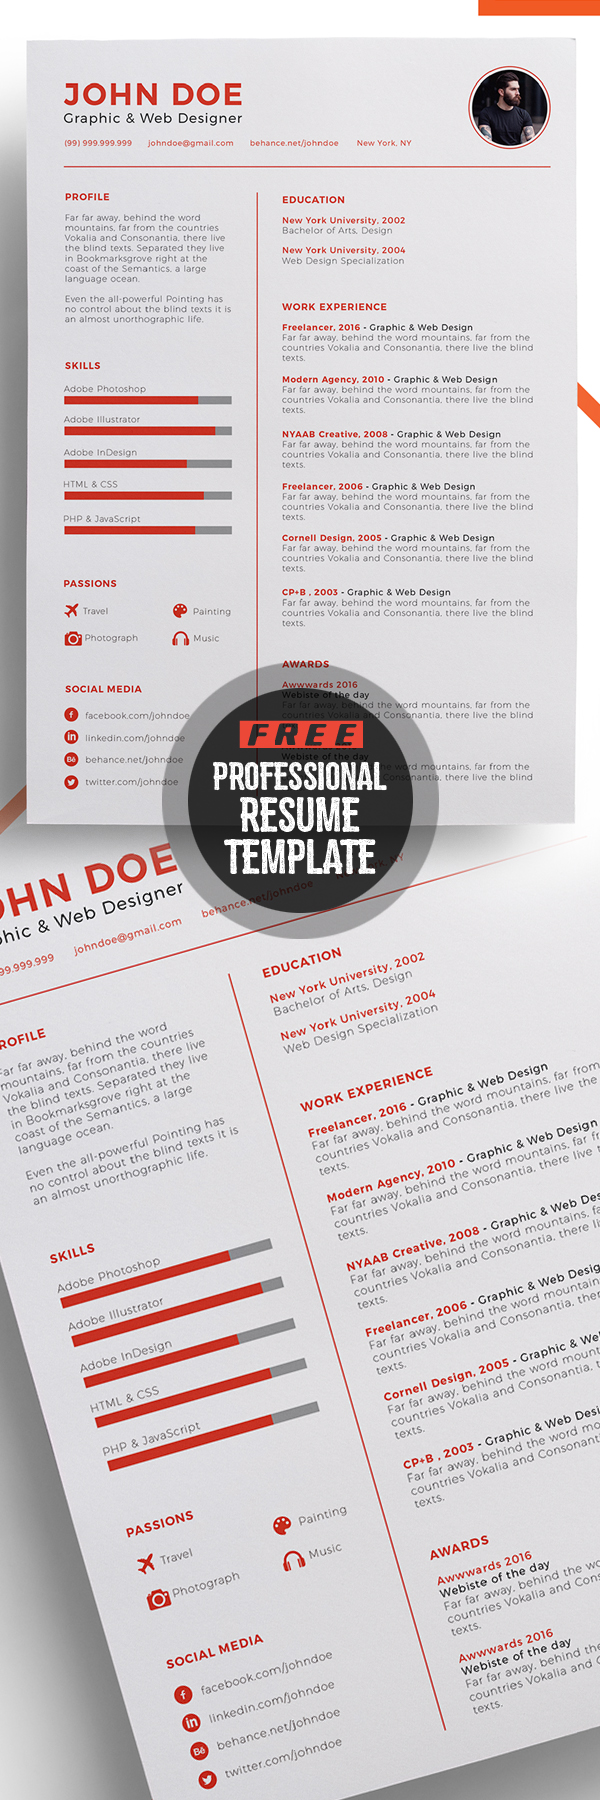 resume templates for bies graphic design junction professional resume template design